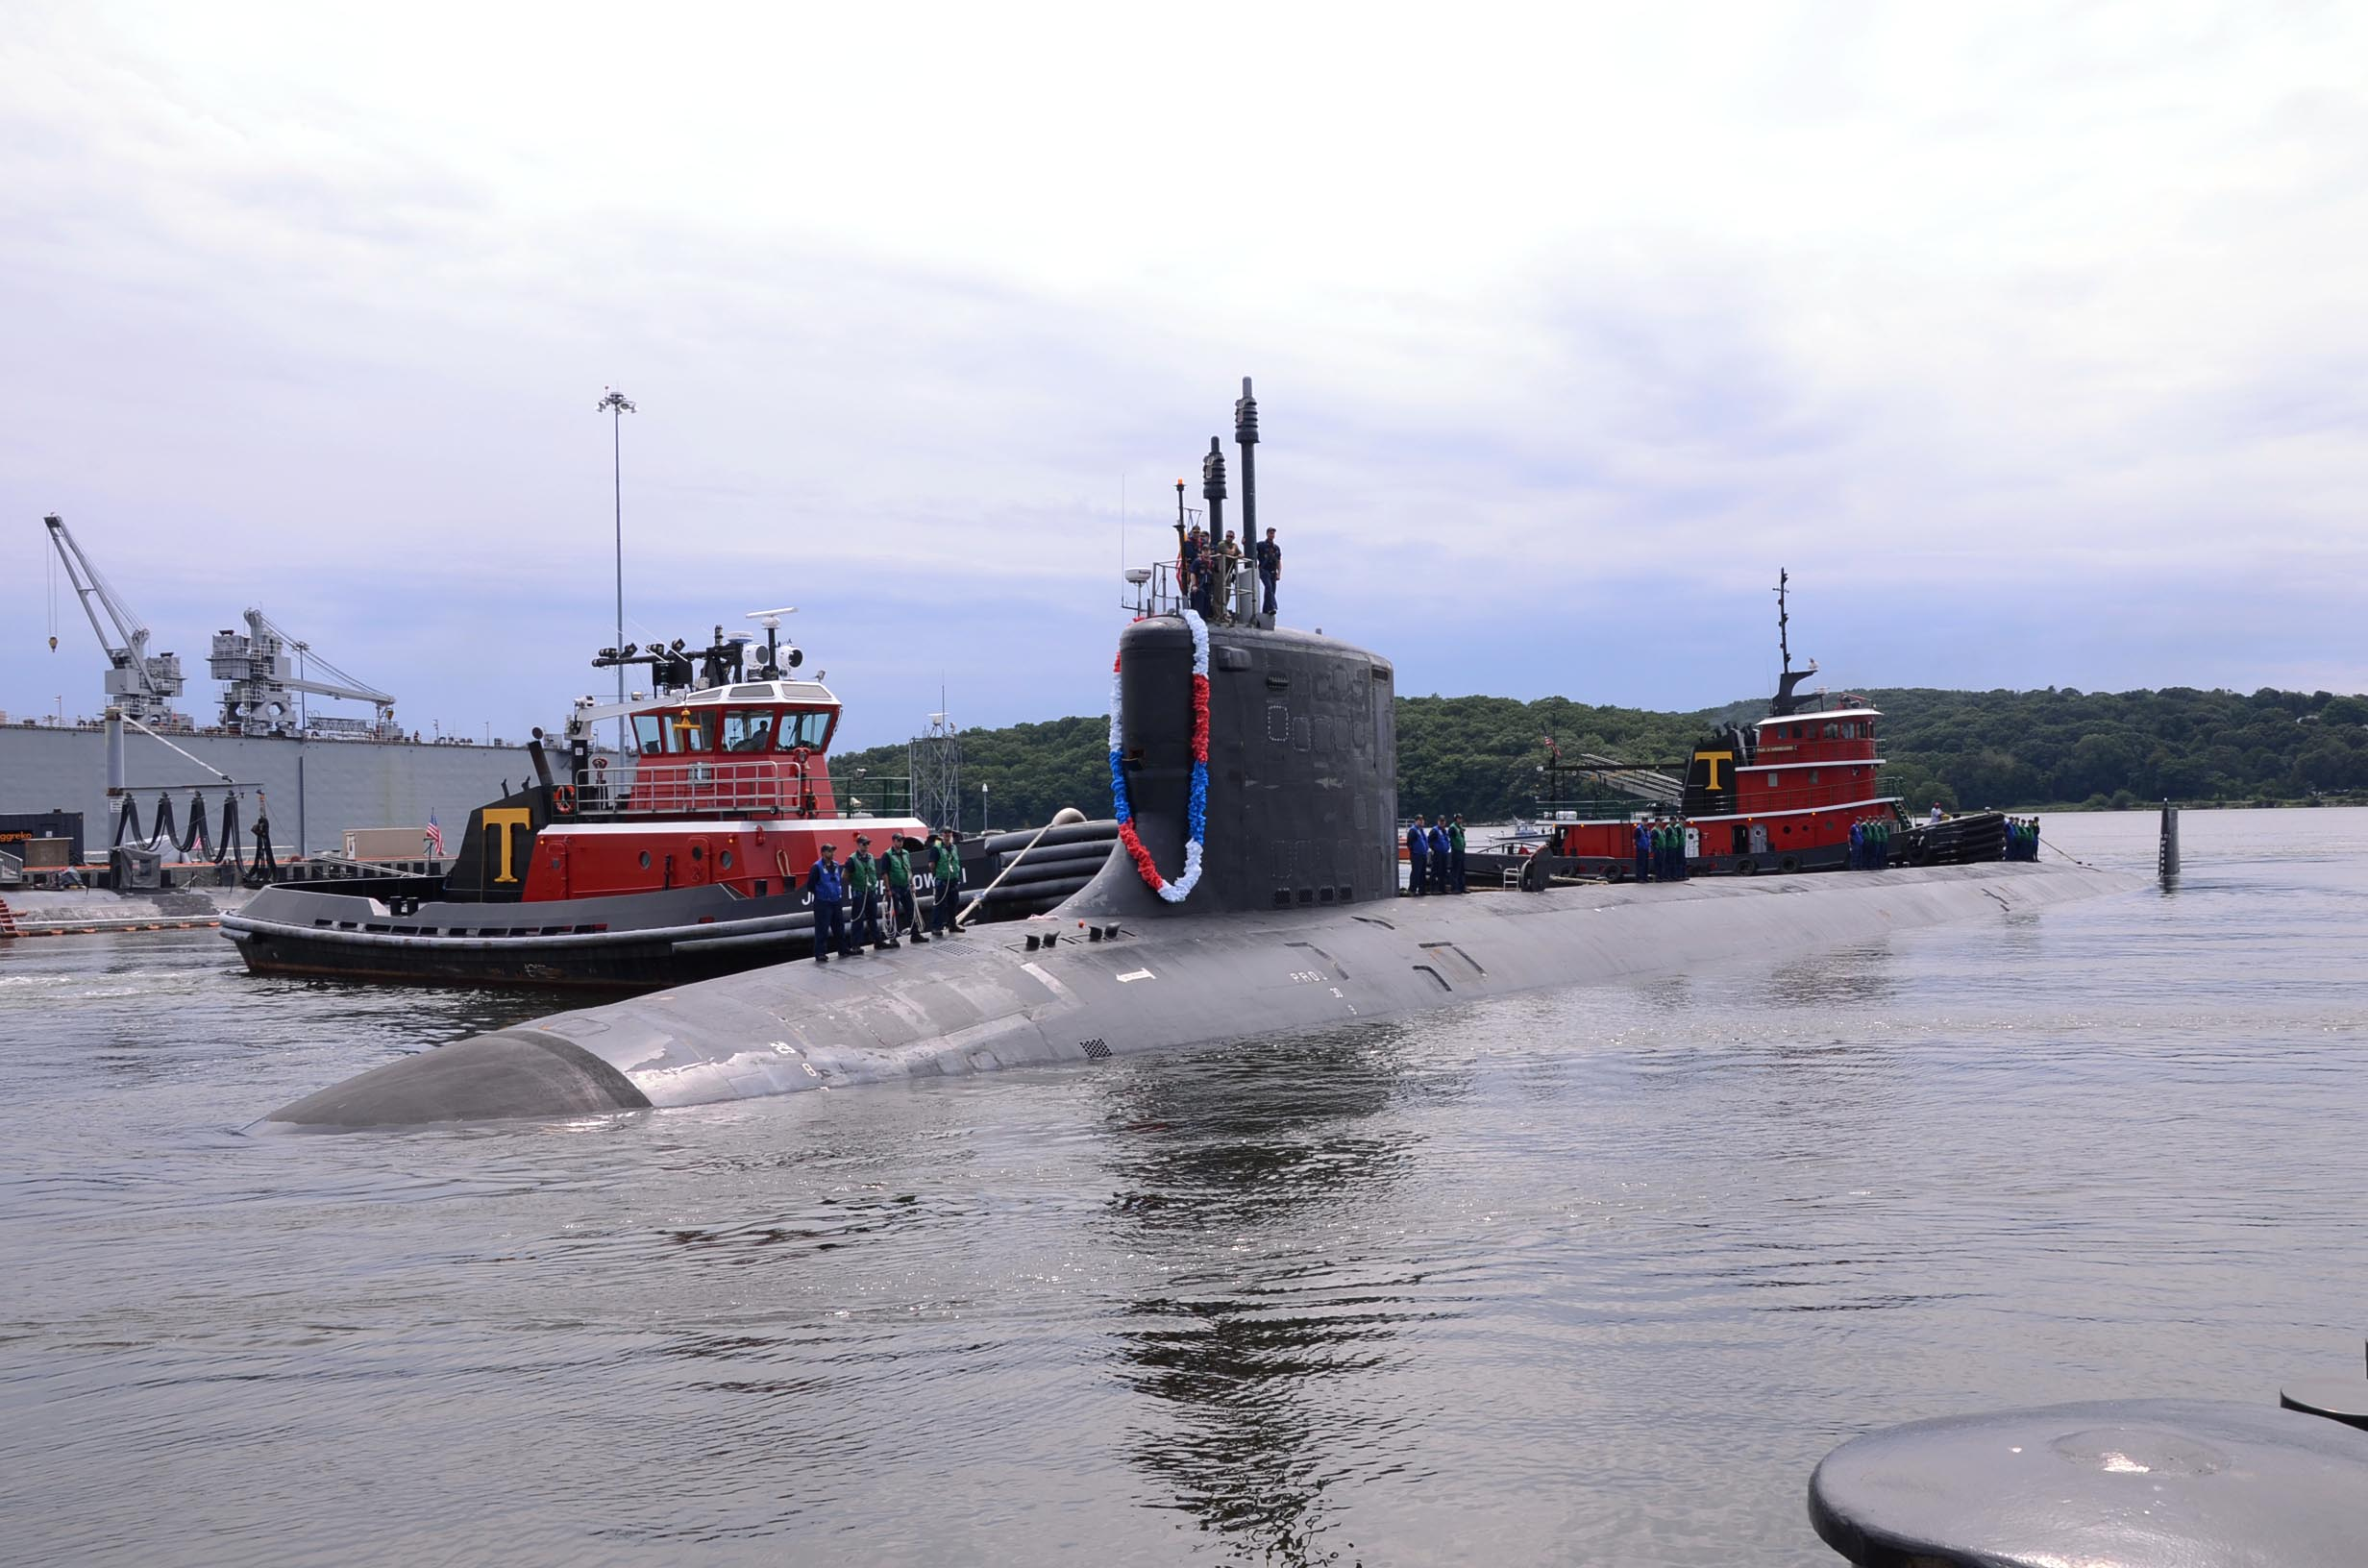 USS NEW MEXICO SSN-779 Groton, CT 12.08.2013Bild: U.S. Navy